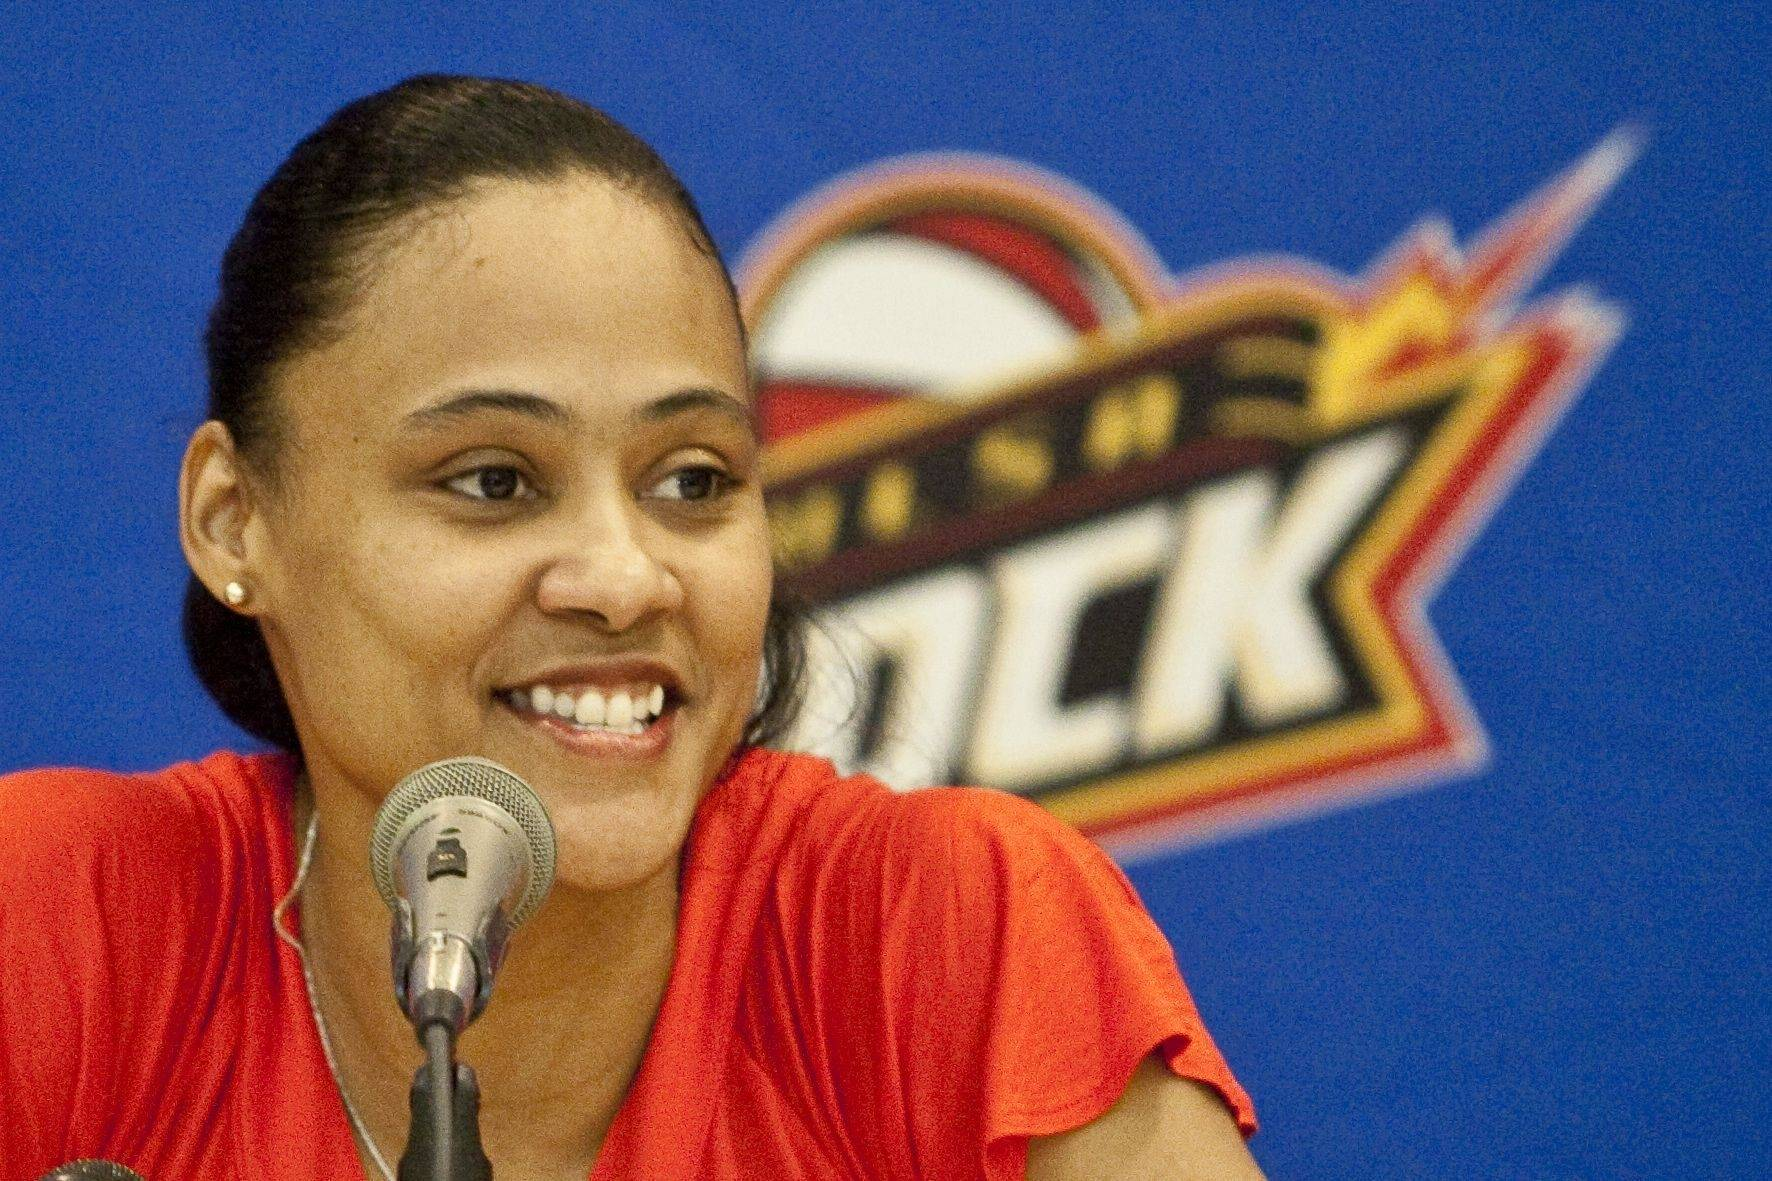 Former sprinter Marion Jones has signed to play WNBA basketball with the Tulsa Shock. The former Olympic sprint played basketball for North Carolina.